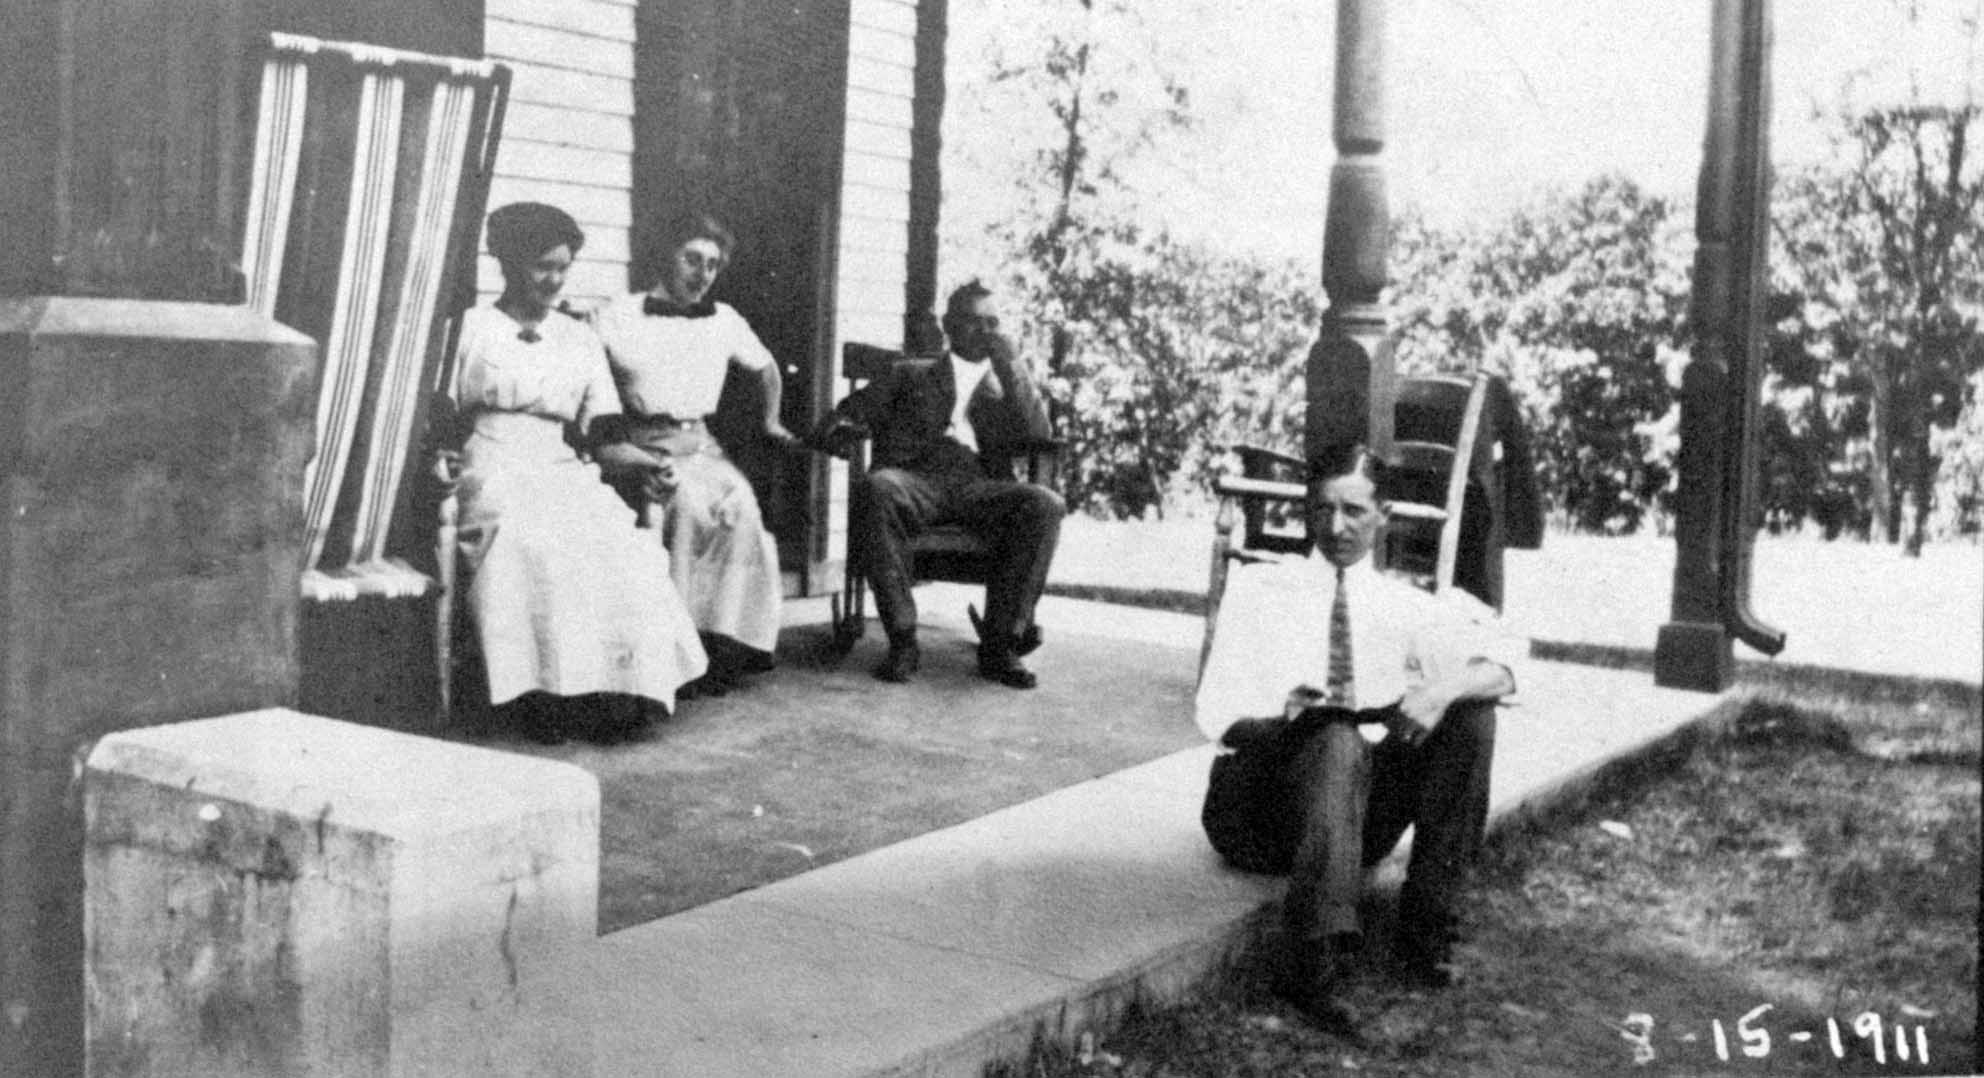 People sitting on porch